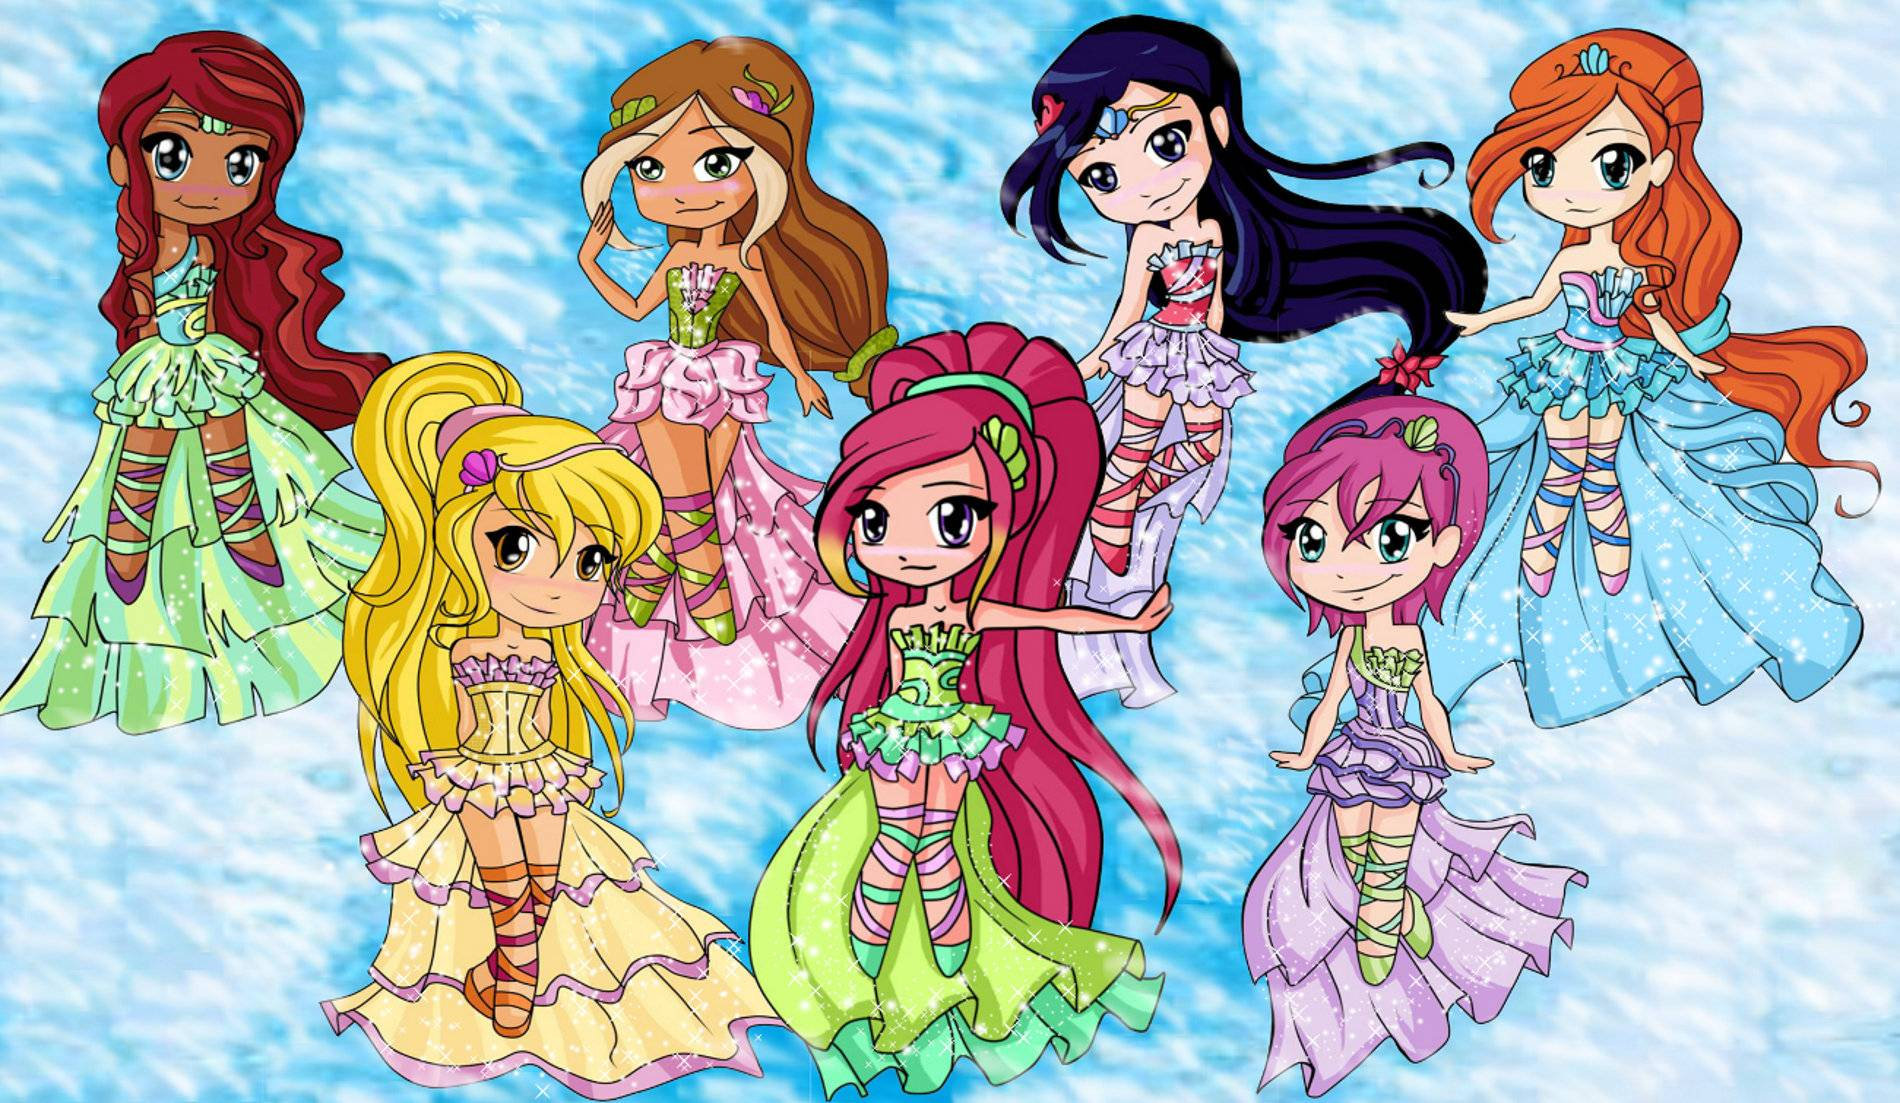 The Winx and Roxy